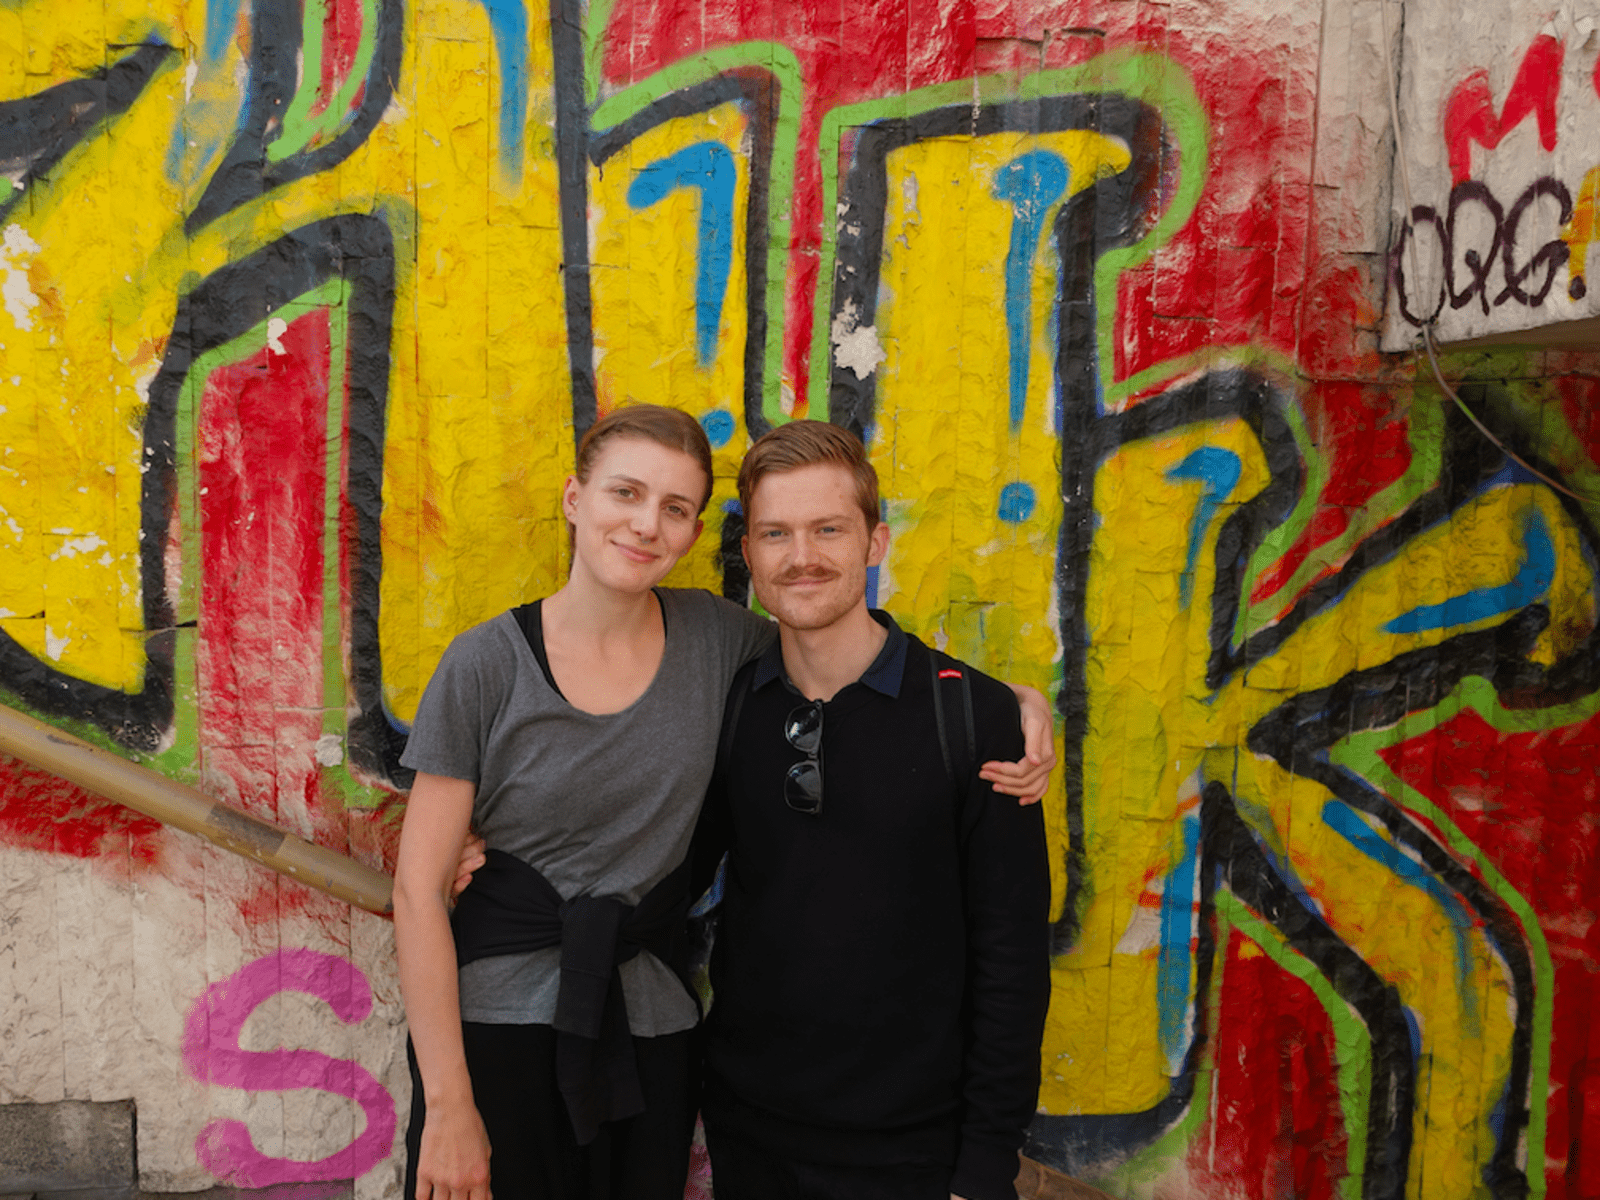 Helon & Nina from Berlin, Germany